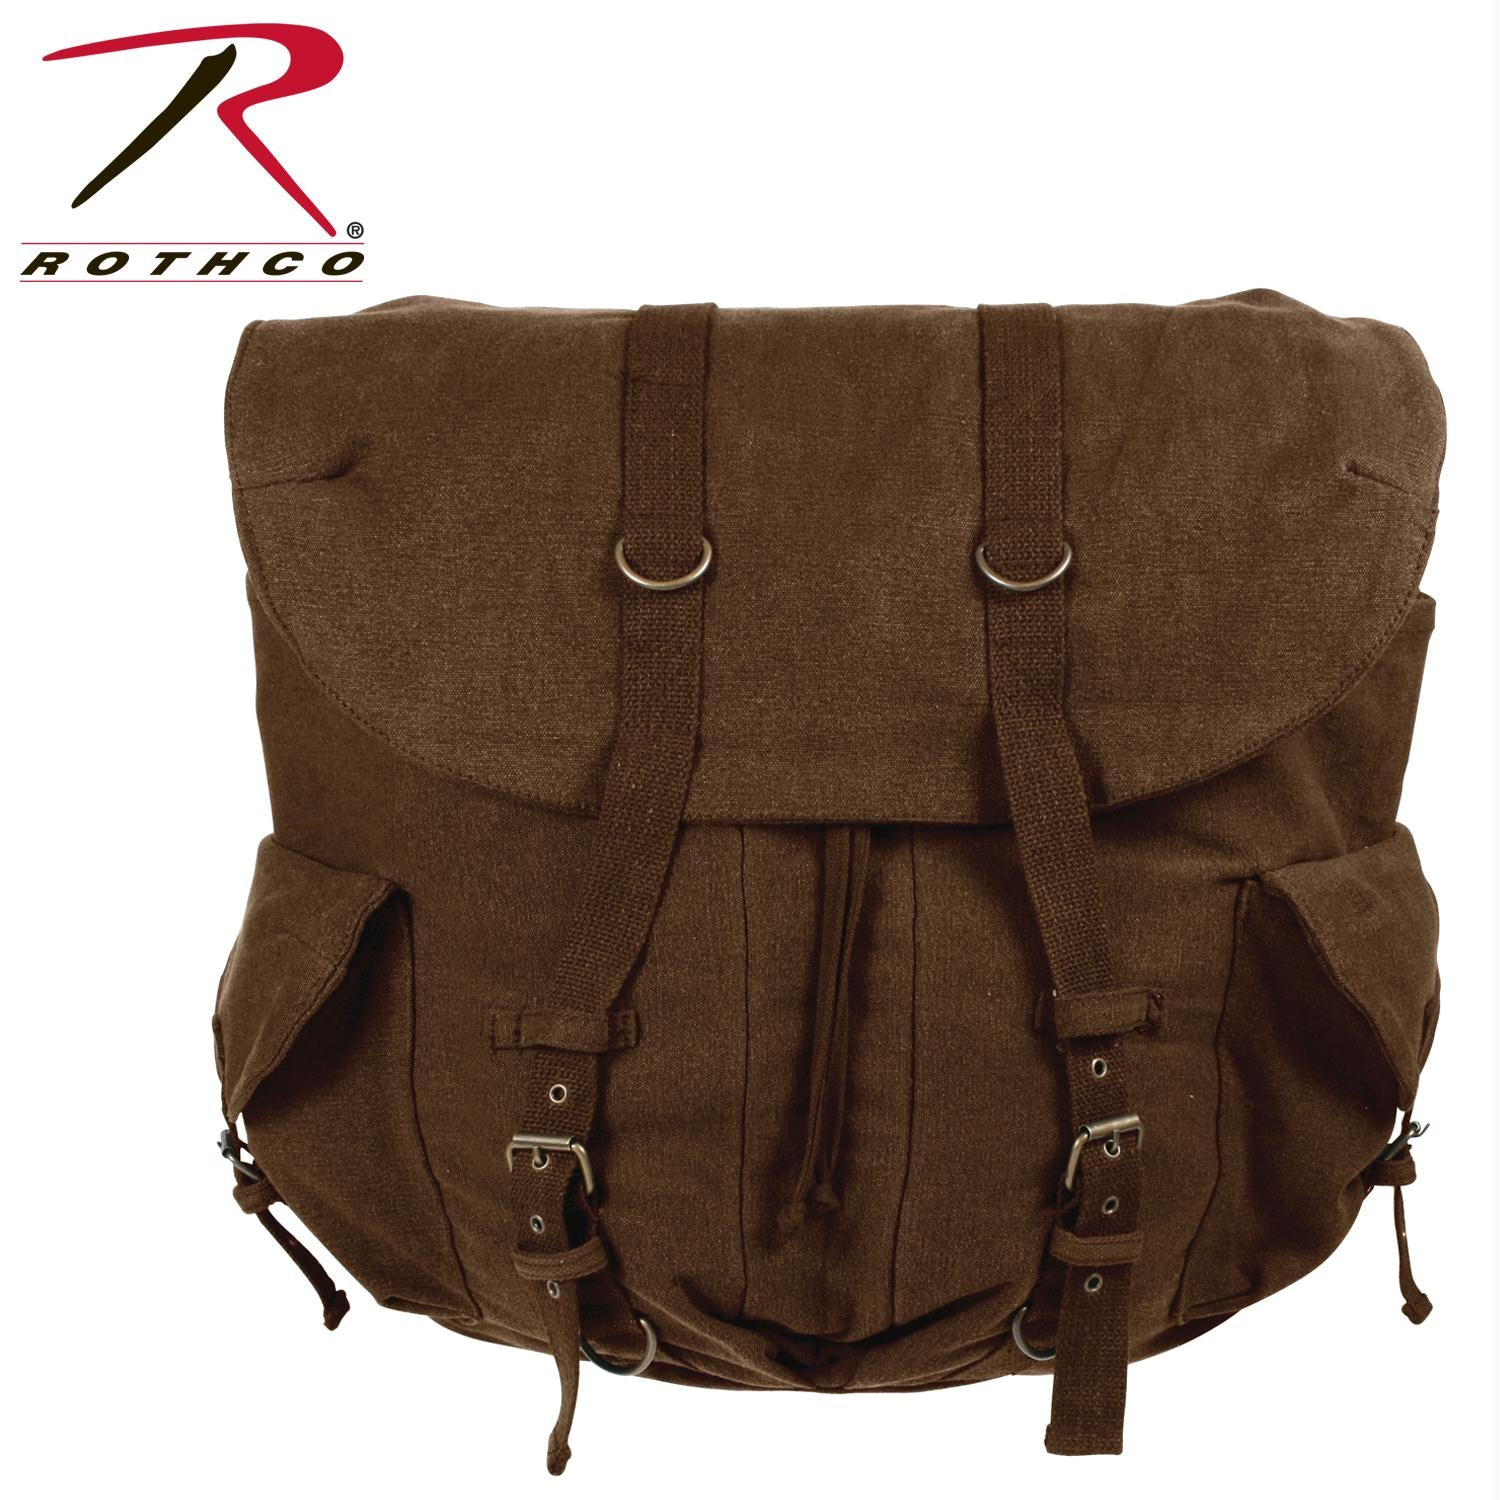 Rothco Vintage Weekender Canvas Backpack - Brown